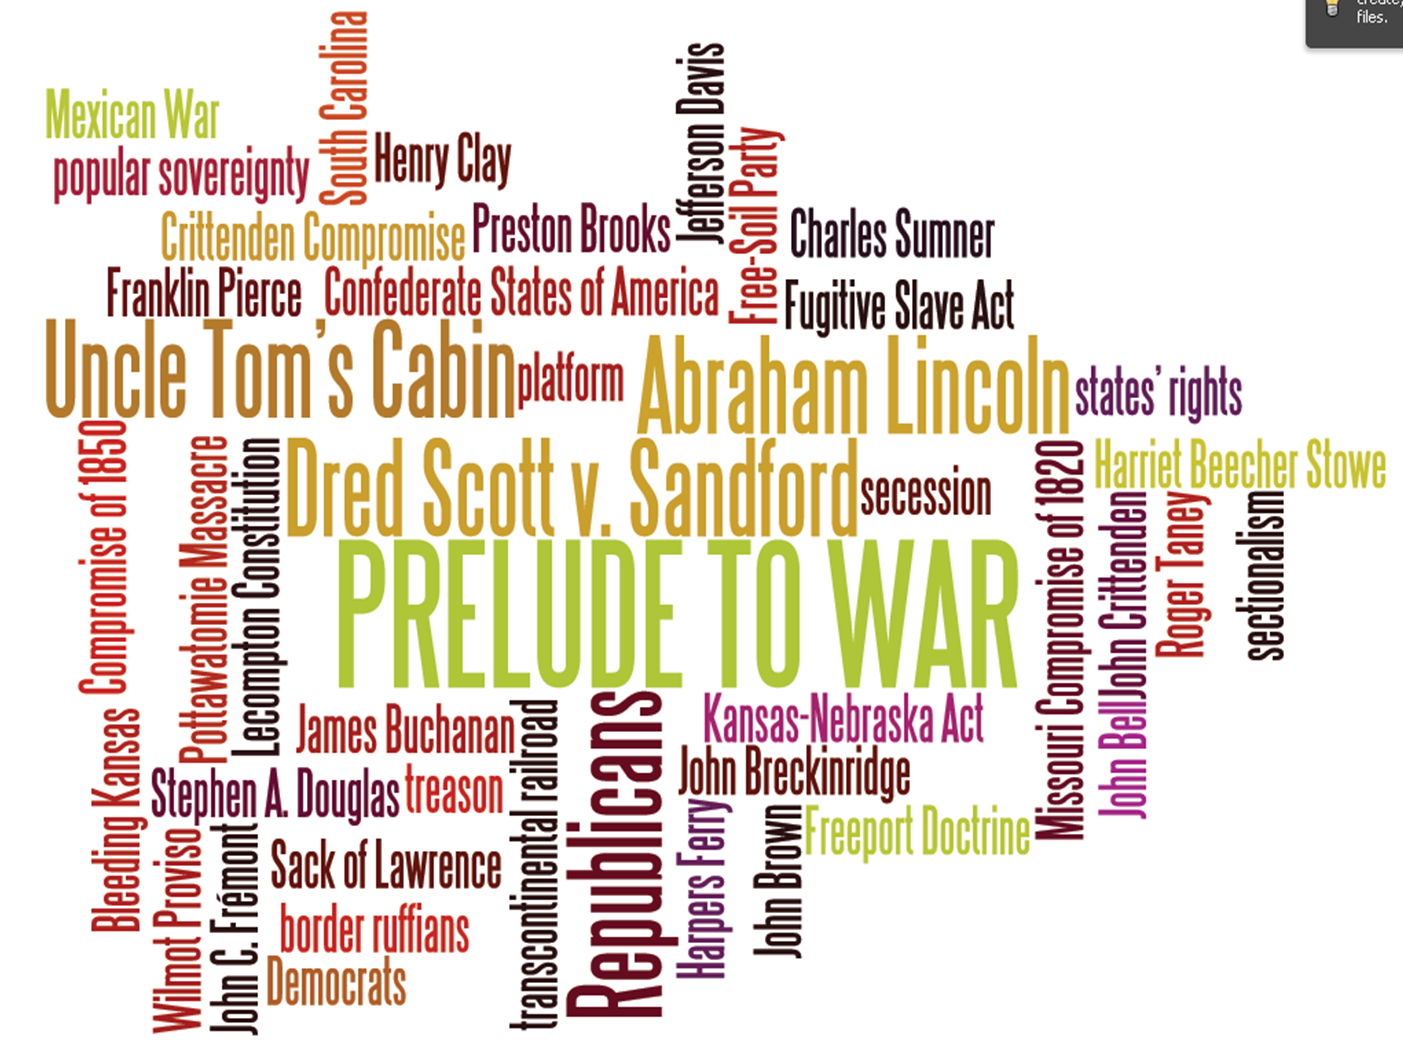 Created with wordle.net